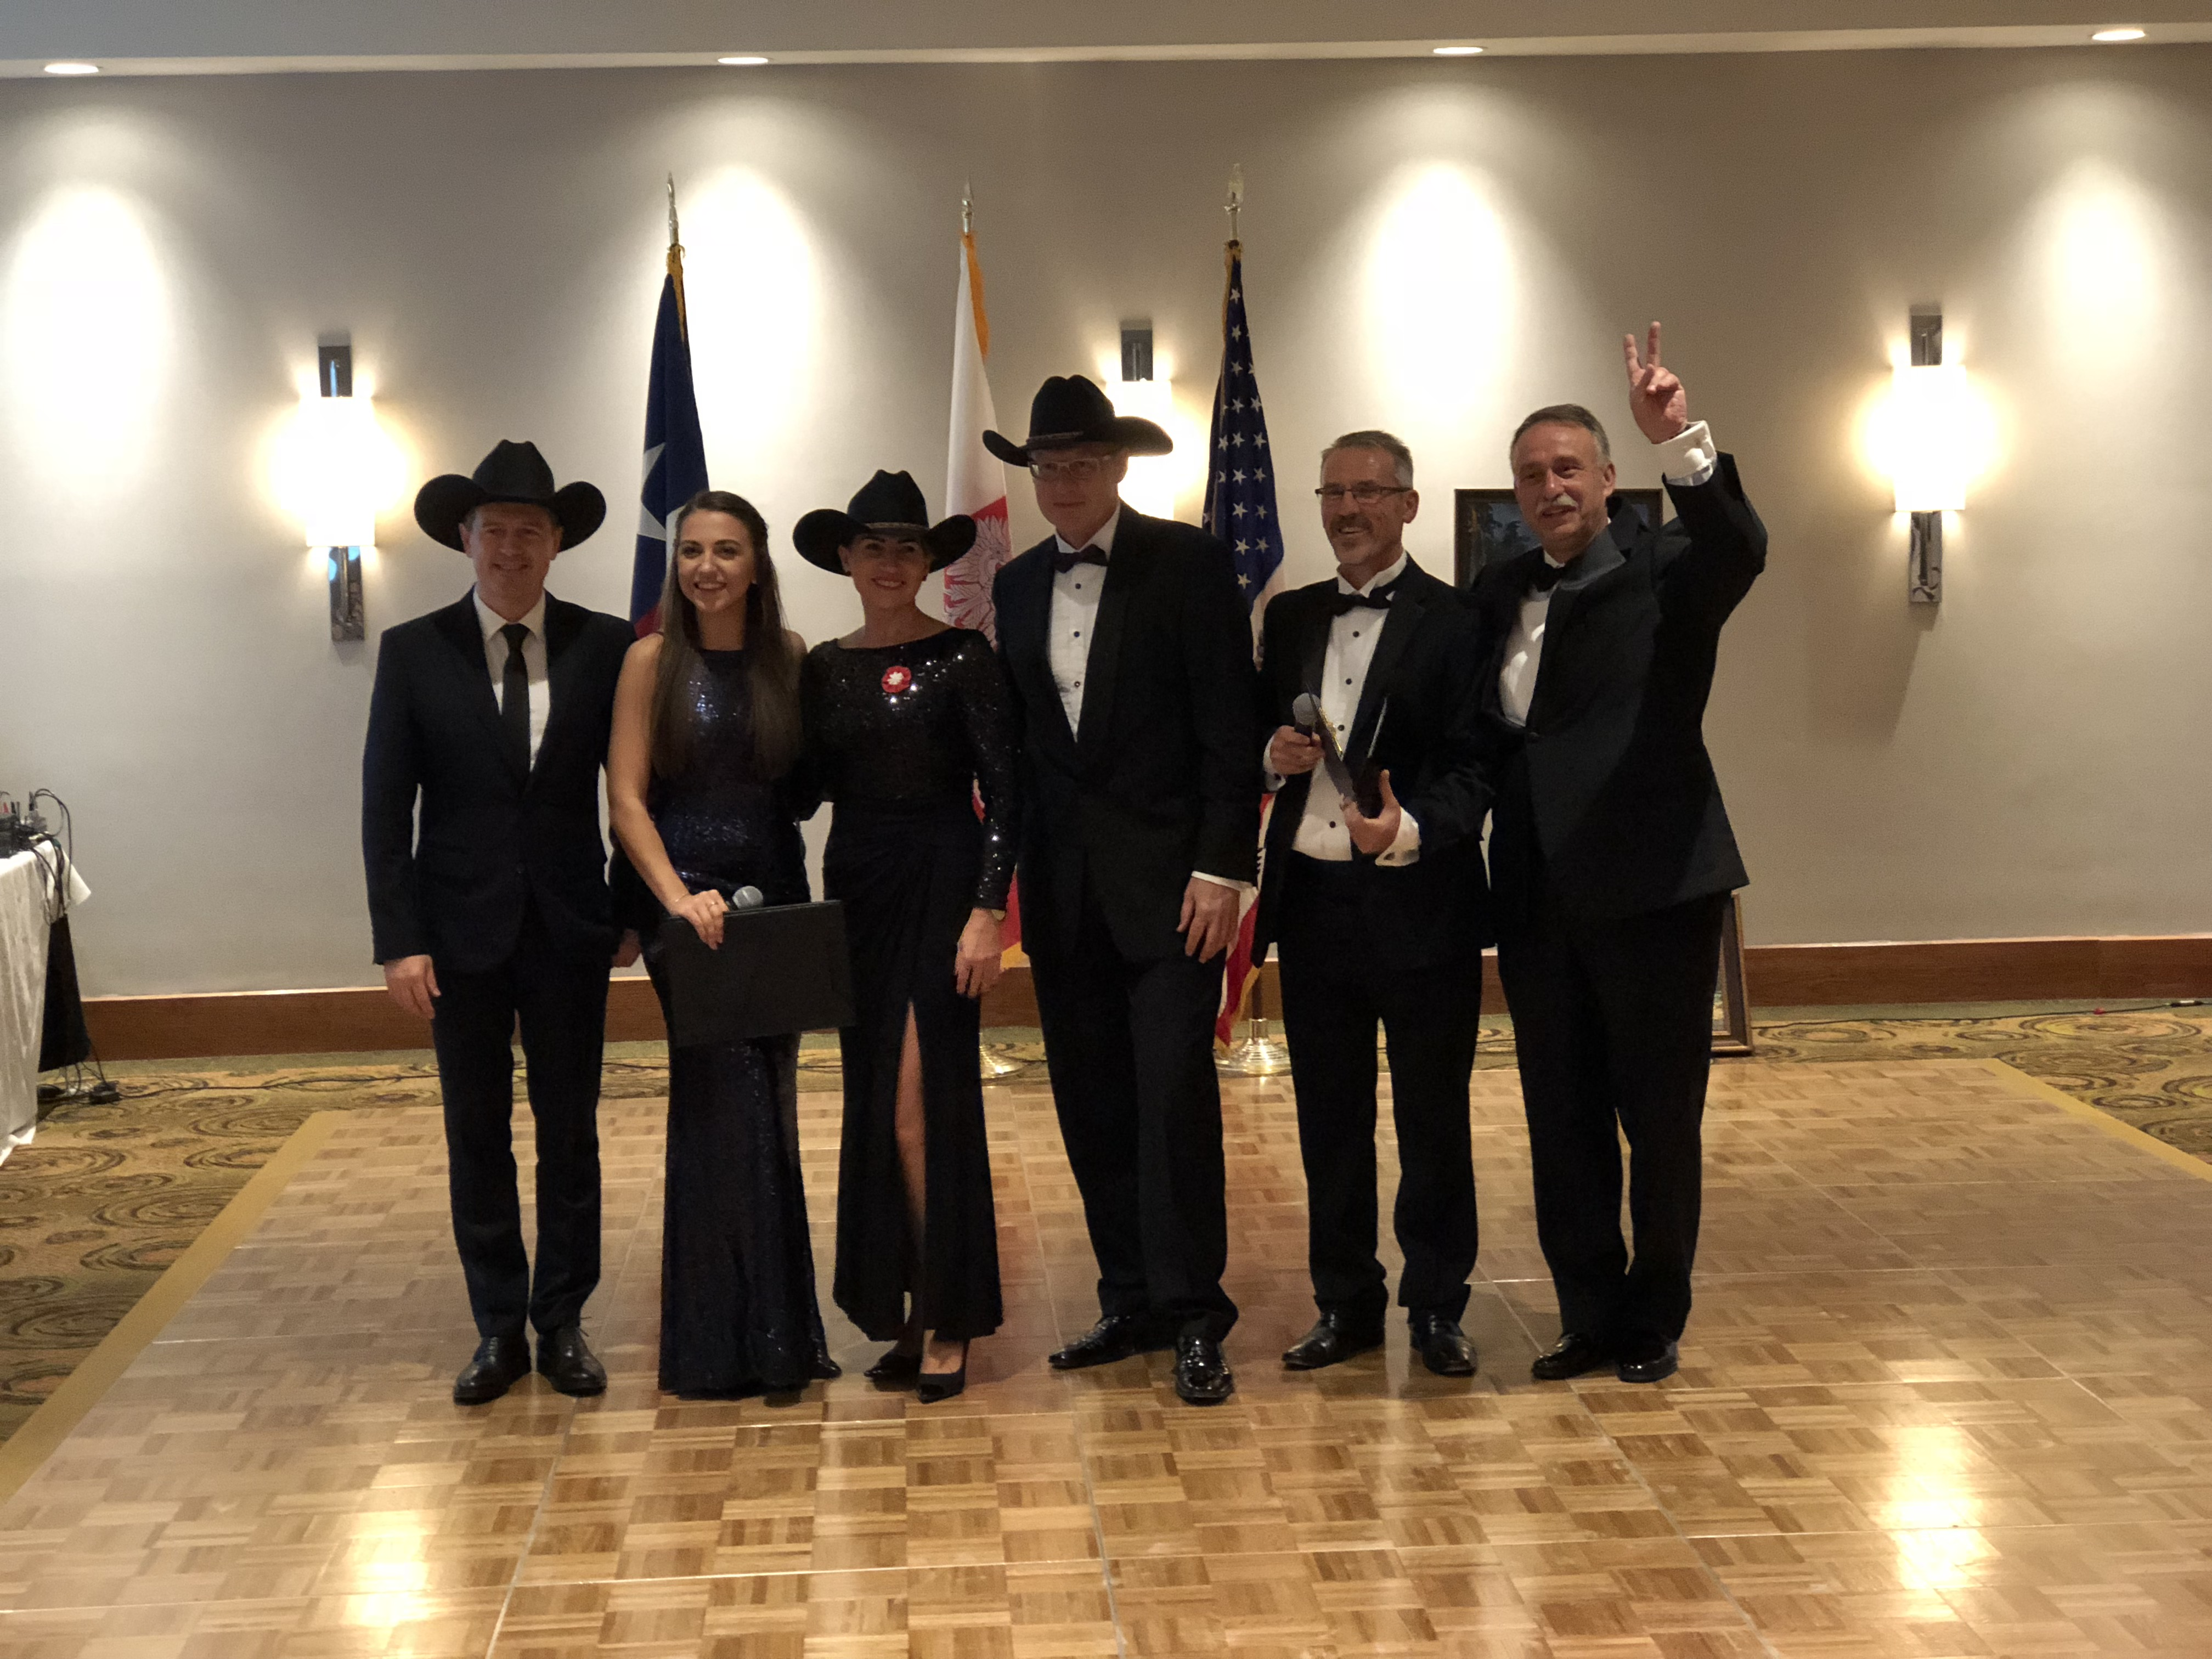 Independence_Ball_2018_1020 058